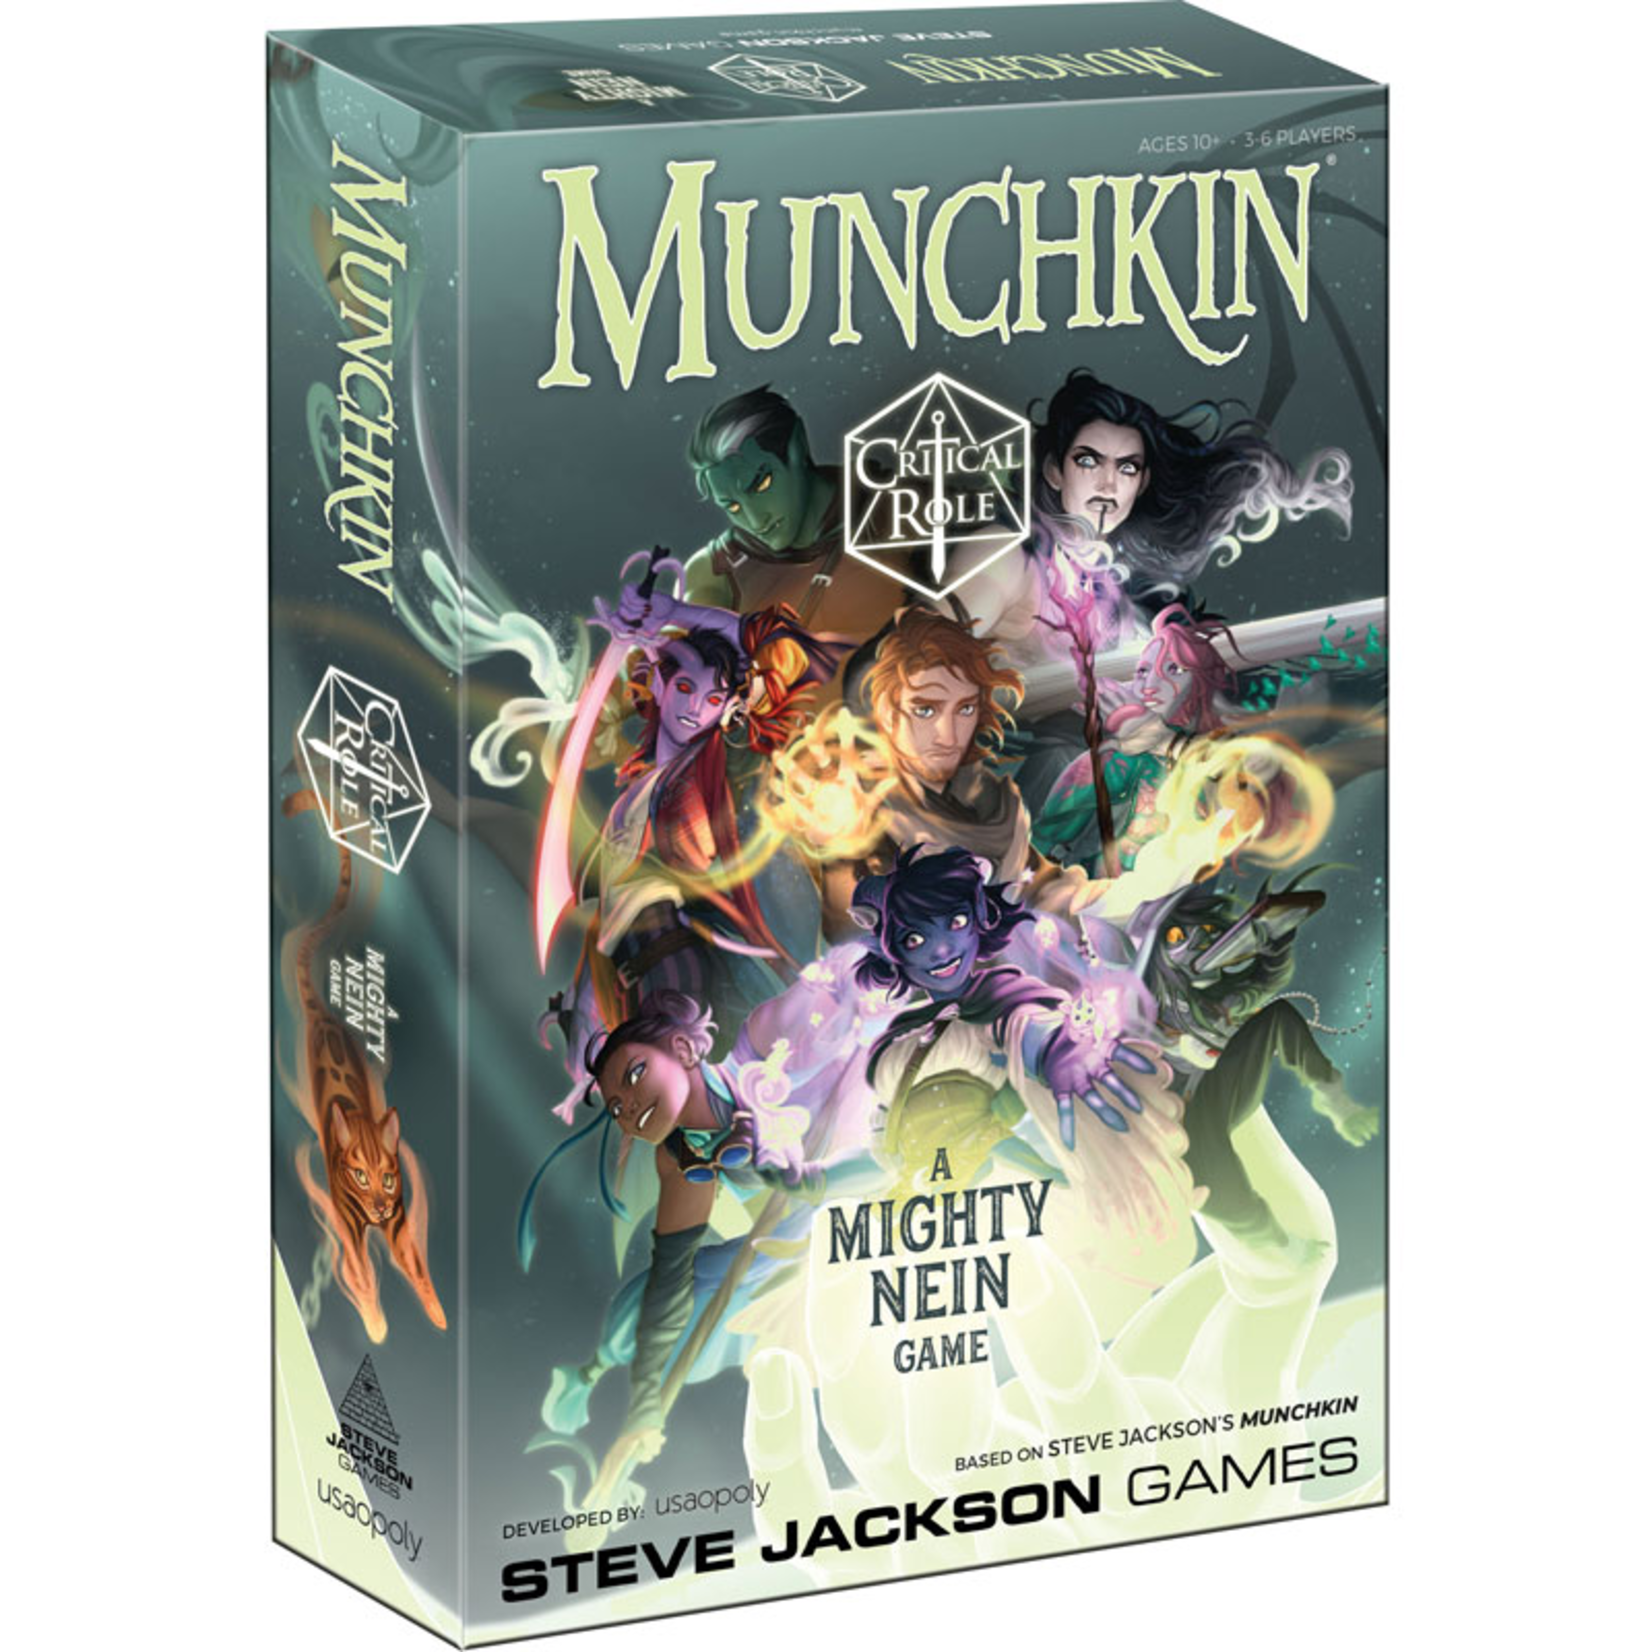 The Op Games   usaopoly Munchkin: Critical Role